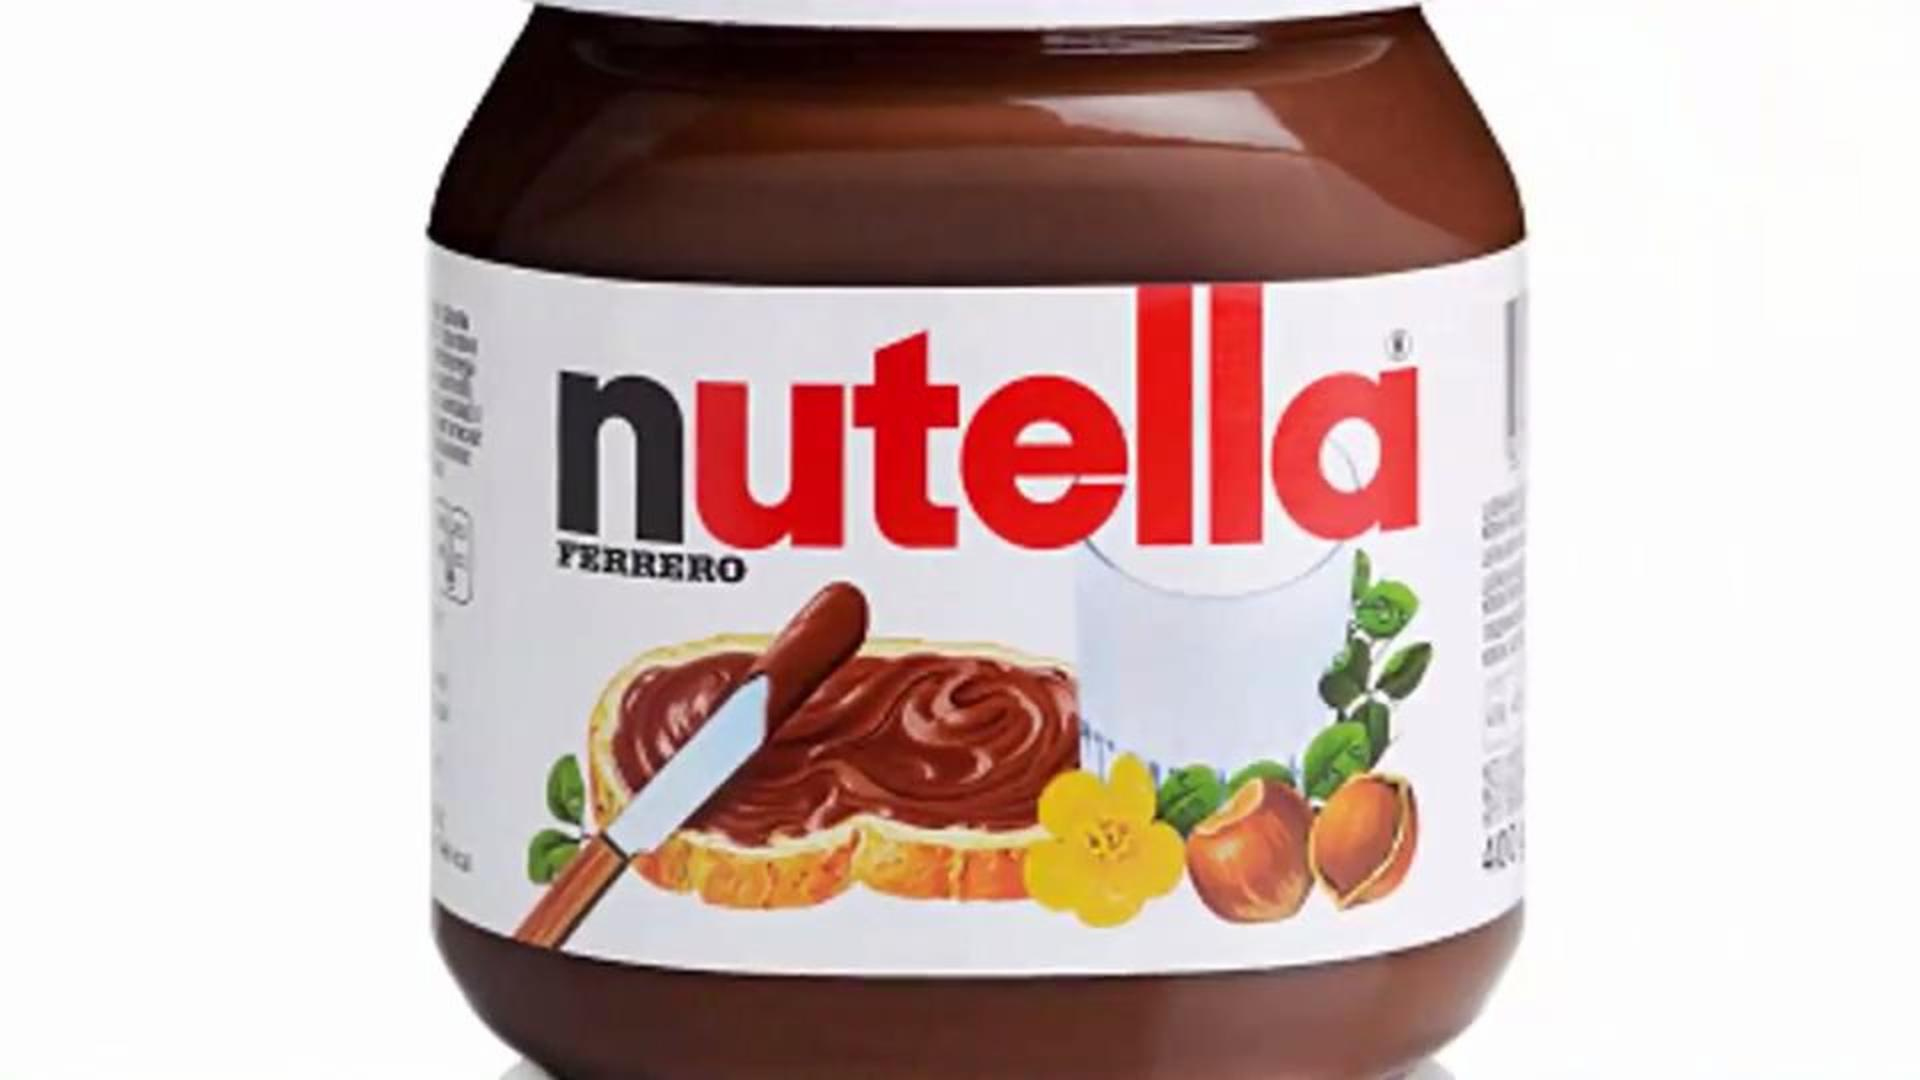 50 Ways To Get Even More Nutella In Your Mouth | HuffPost Life